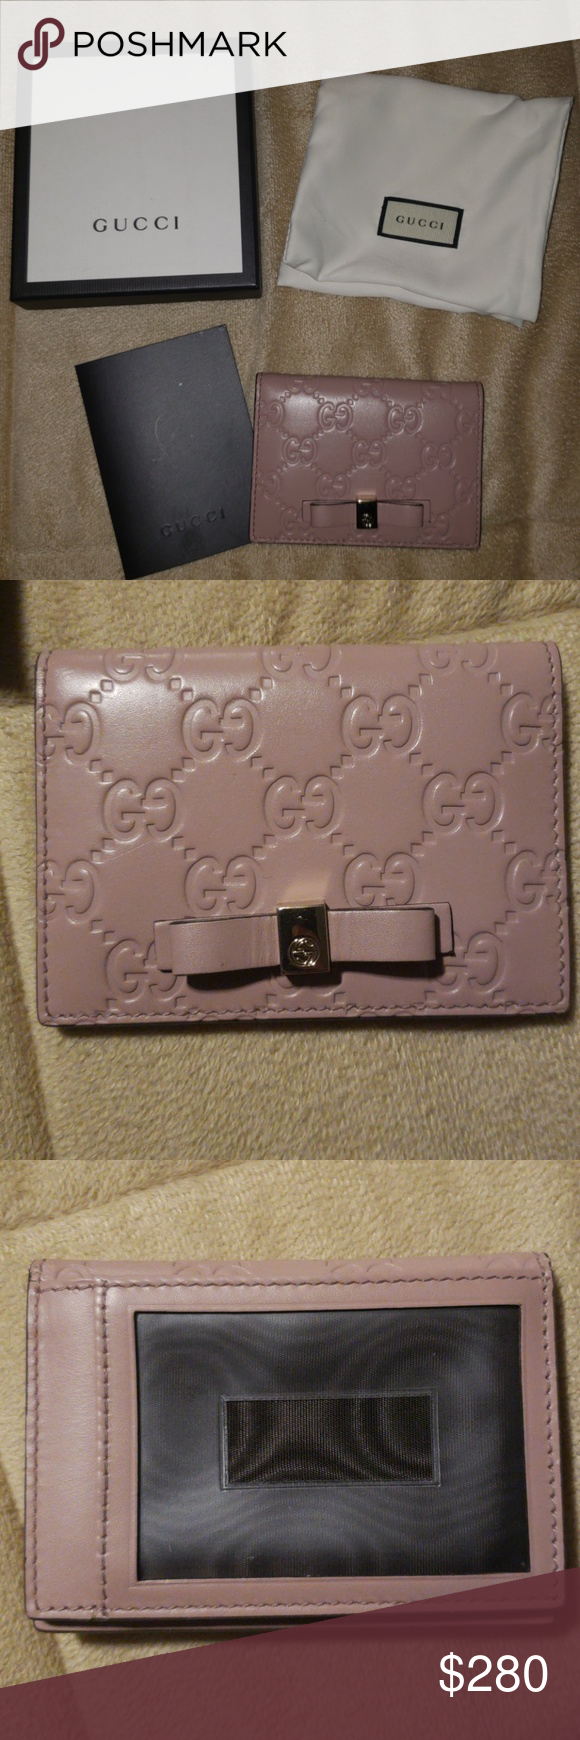 Gucci Bow Card Case Discontinued Model Card Case In